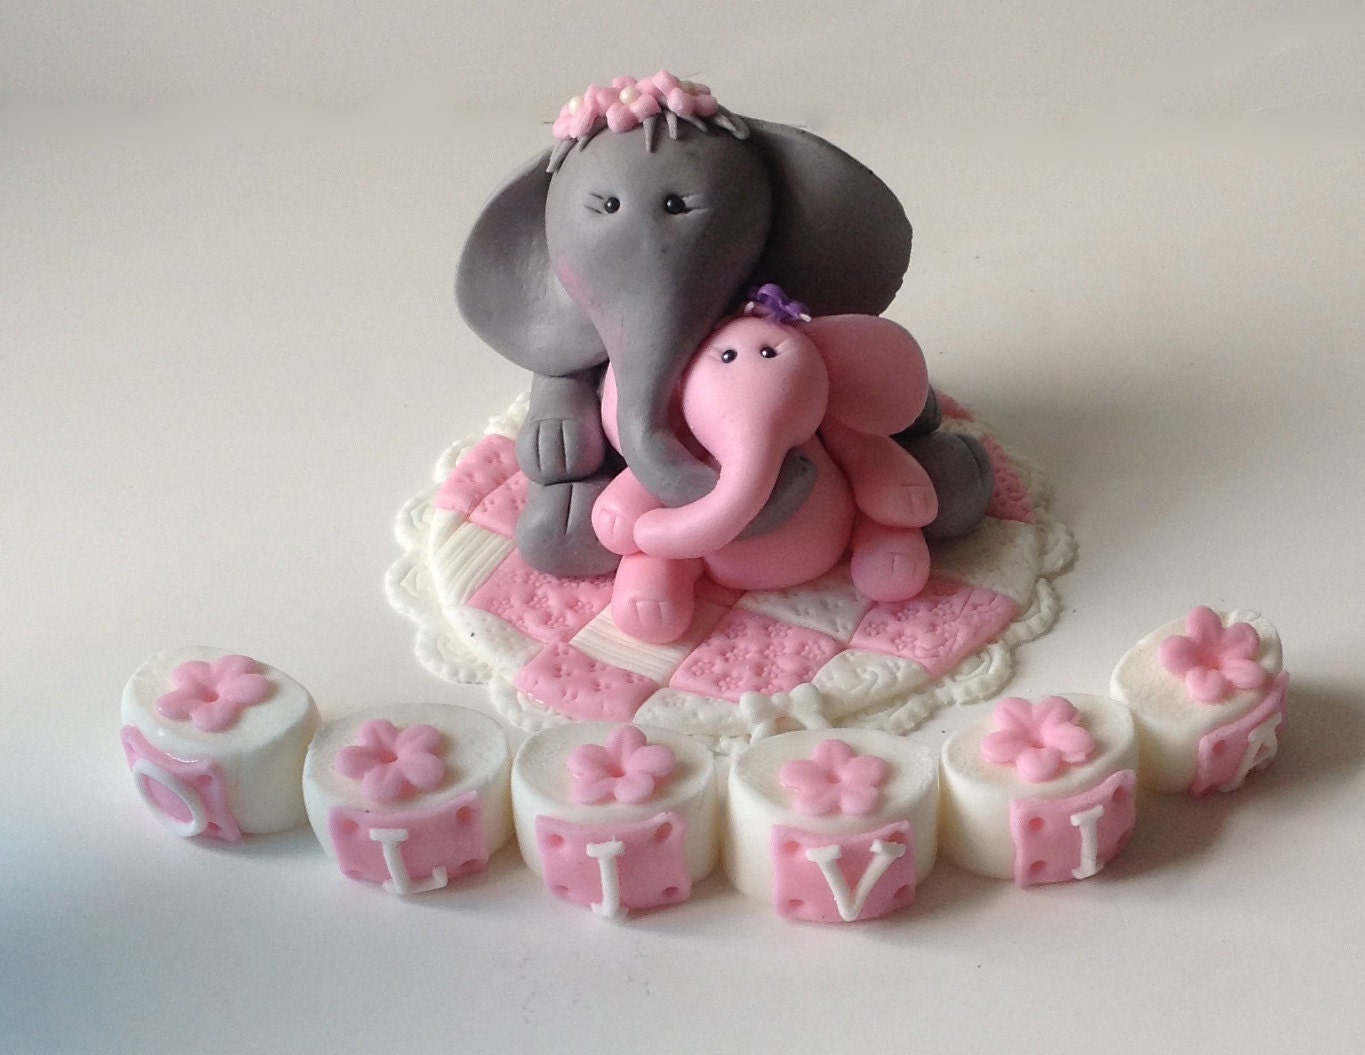 fondant elephant safari baby shower cake topper by ediblesugarart